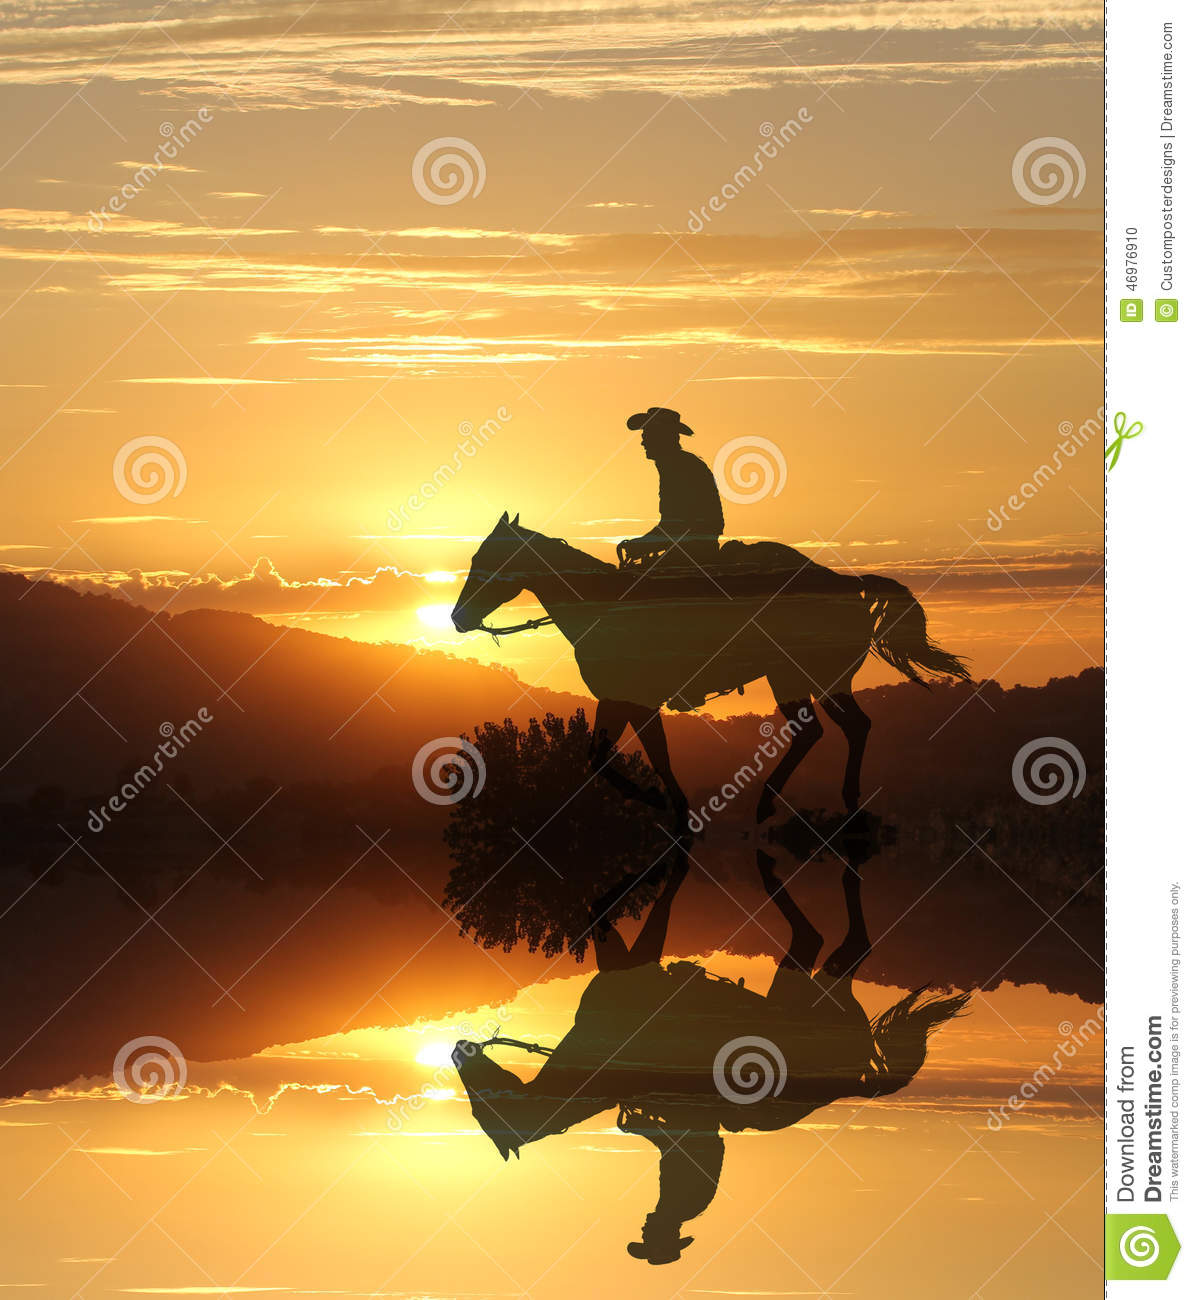 Download Sunset Cowboy By A Lake In The Mountains. Stock Photo - Image of dream, farmer: 46976910